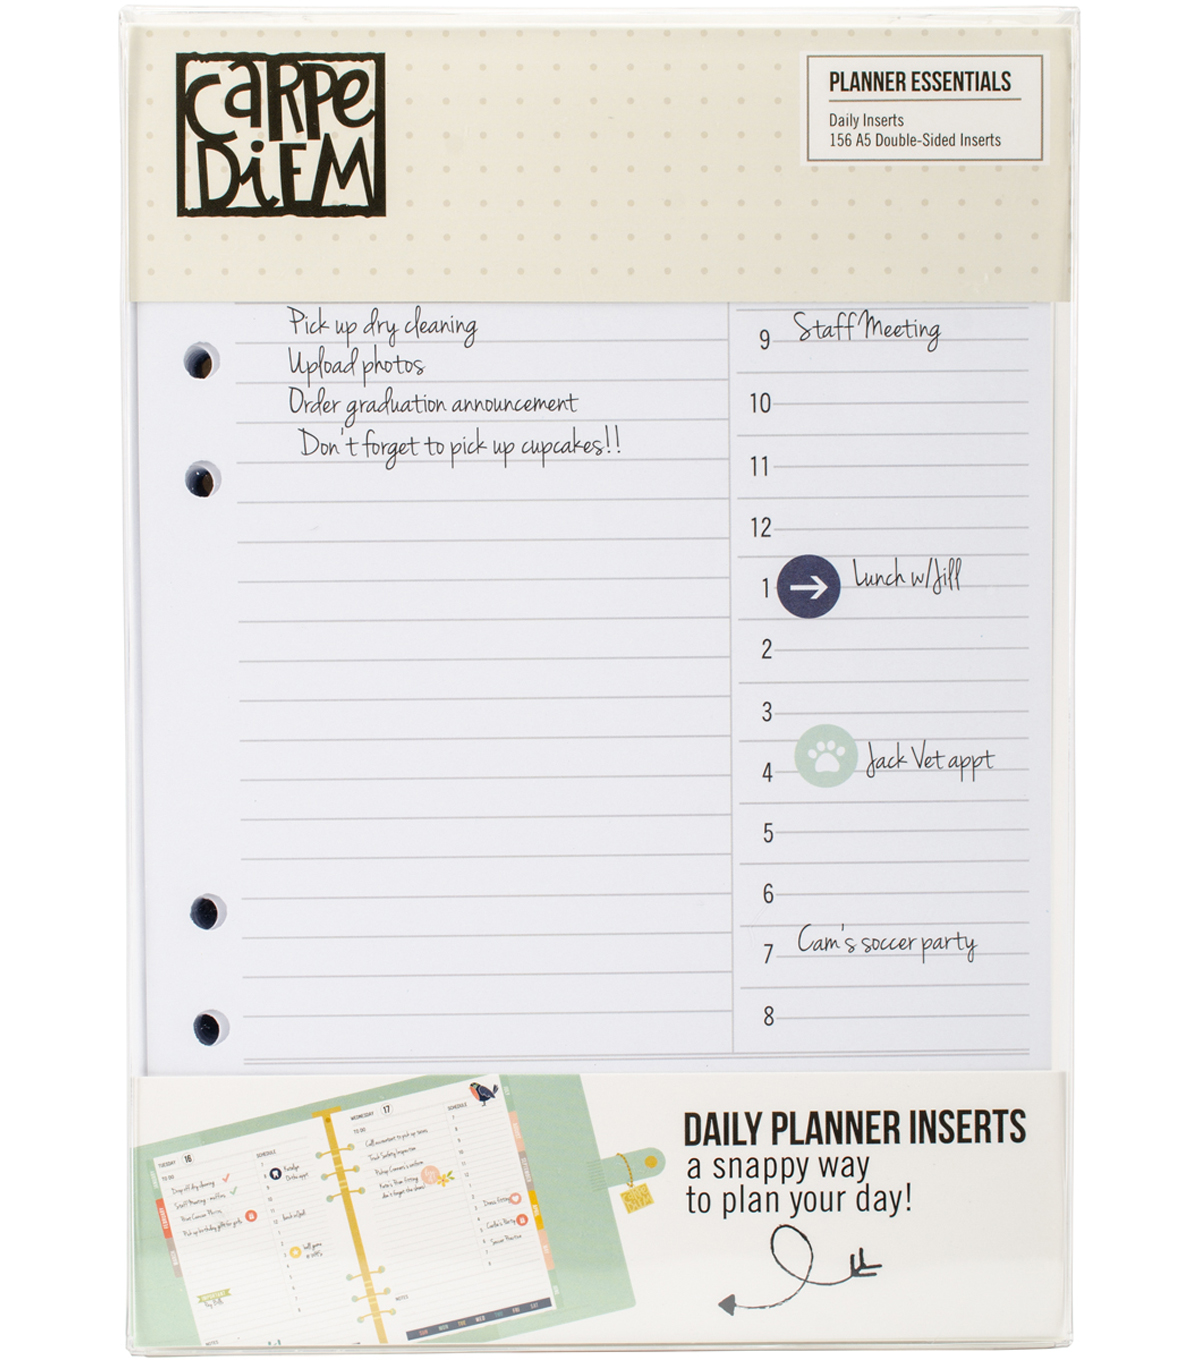 Planner Essentials Double-Sided A5 Inserts 156/Pkg-Daily